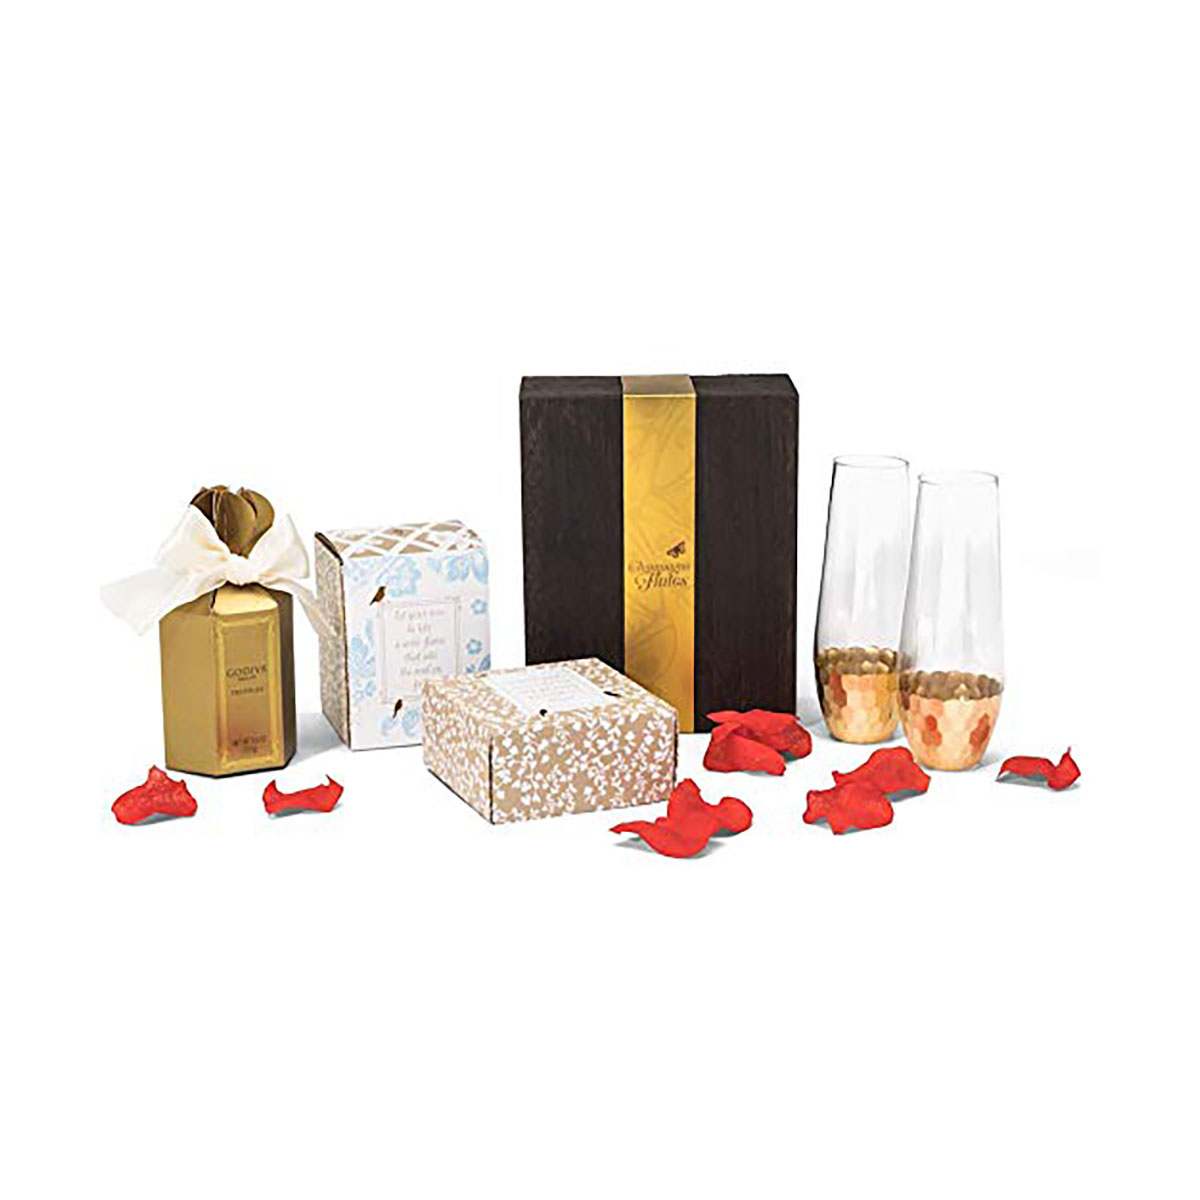 Godiva Chocolate Truffles and Champagne